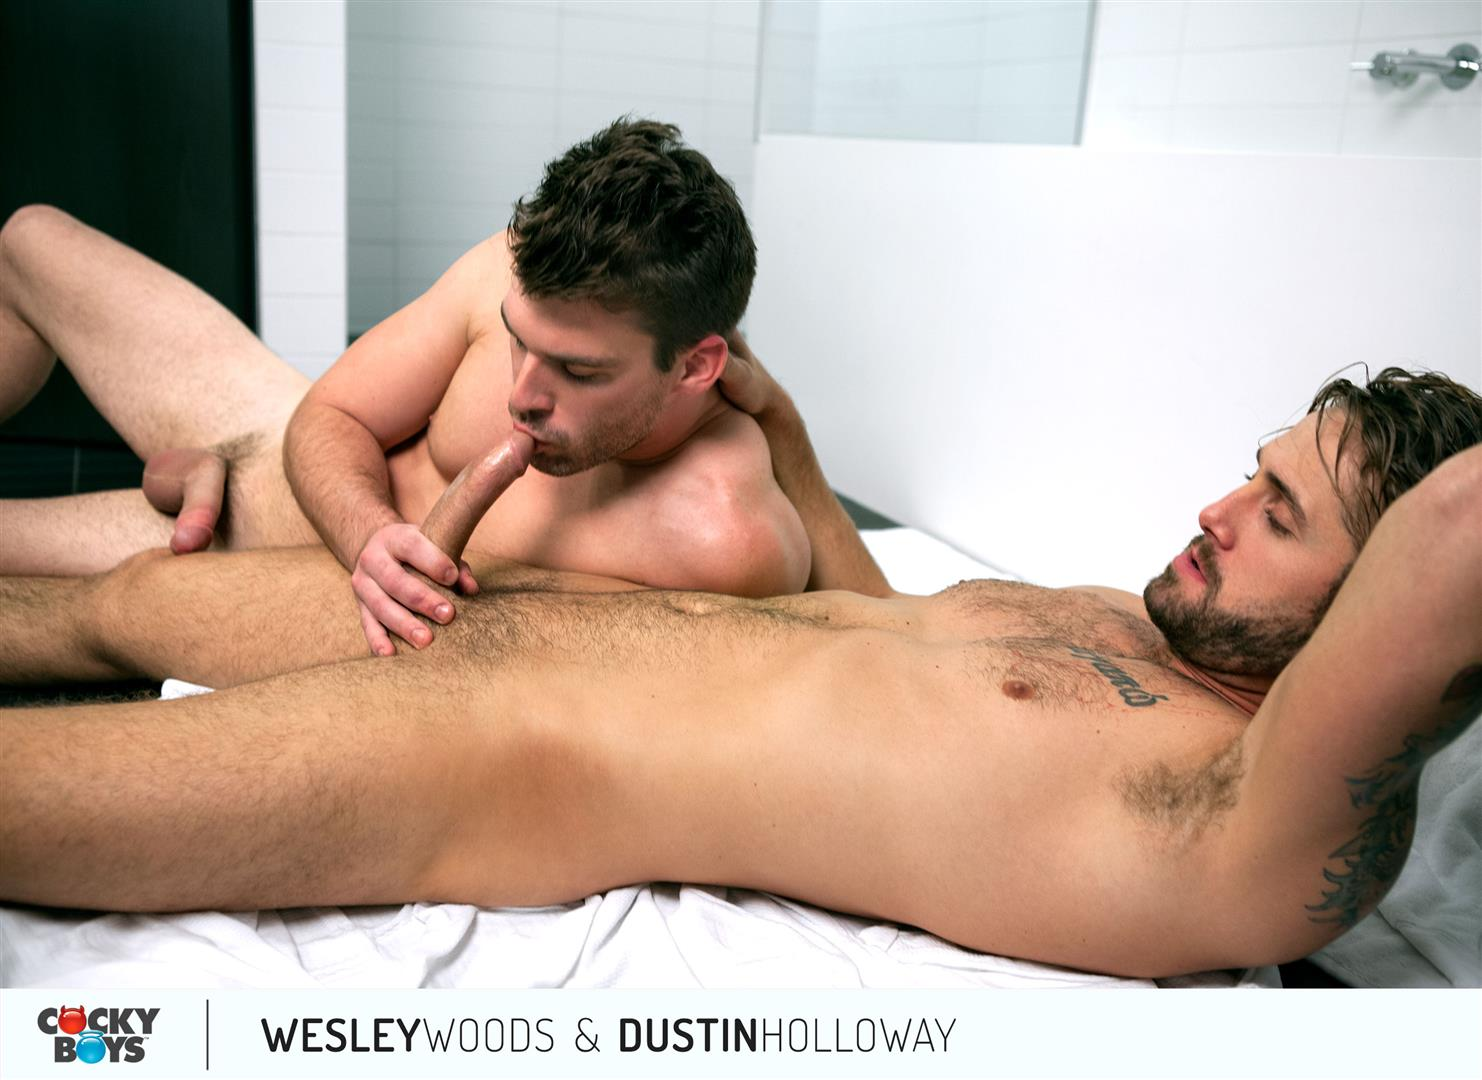 Cockyboys Wesley Woods and Dustin Holloway Hung Hunks Flip Fucking Amateur Gay Porn 22 Cockyboys:  Wesley Woods and Dustin Holloway Flip Flop Fucking